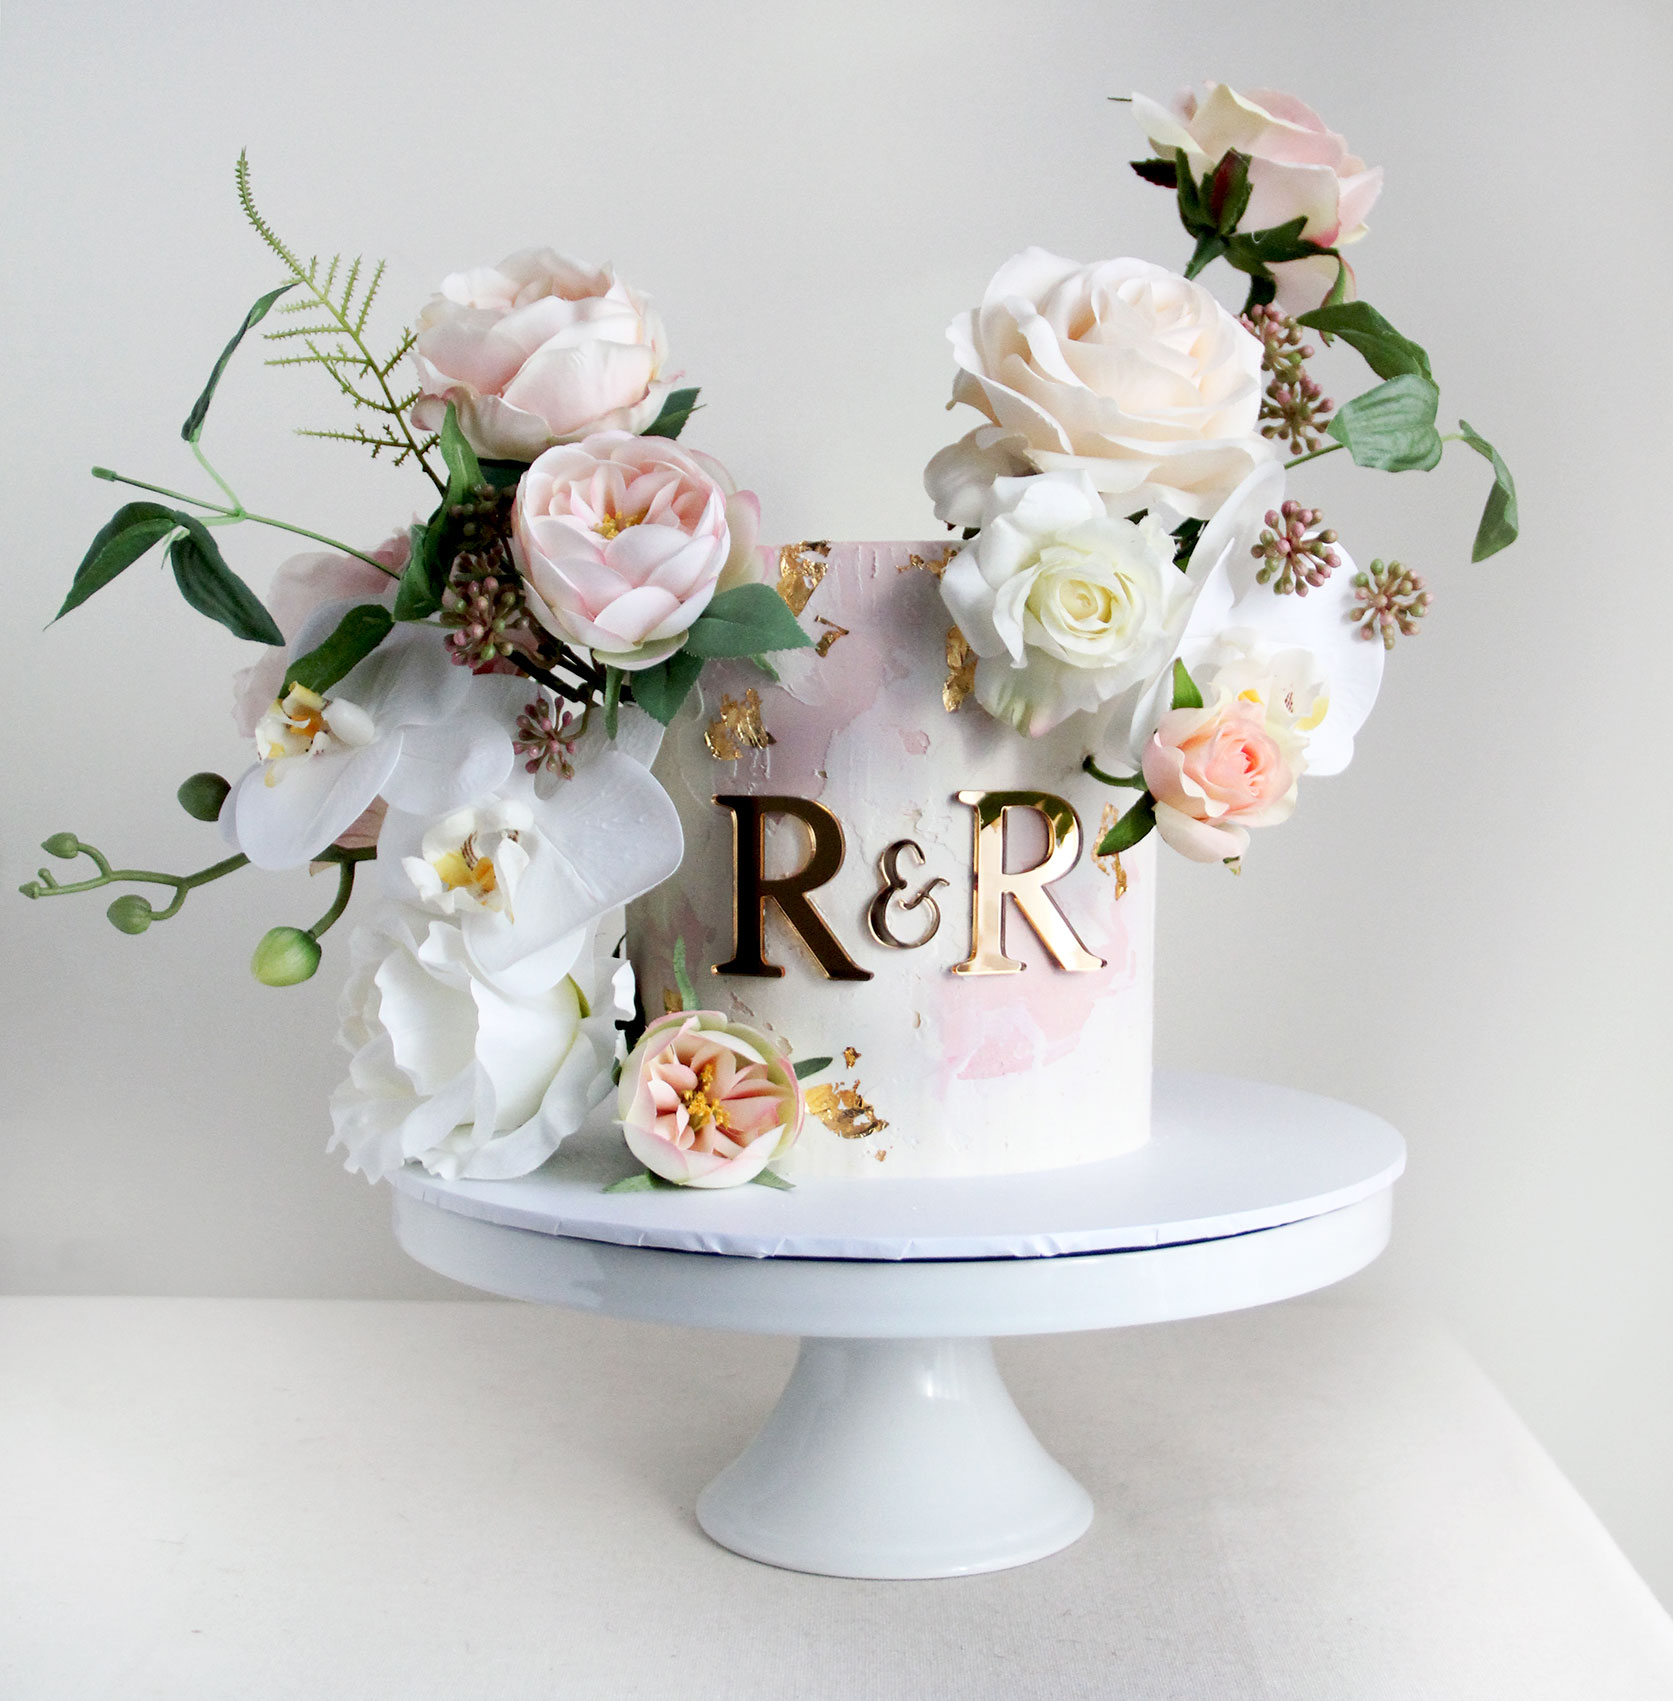 Watercolour Pale Pink with Romantic Flowers & Initials